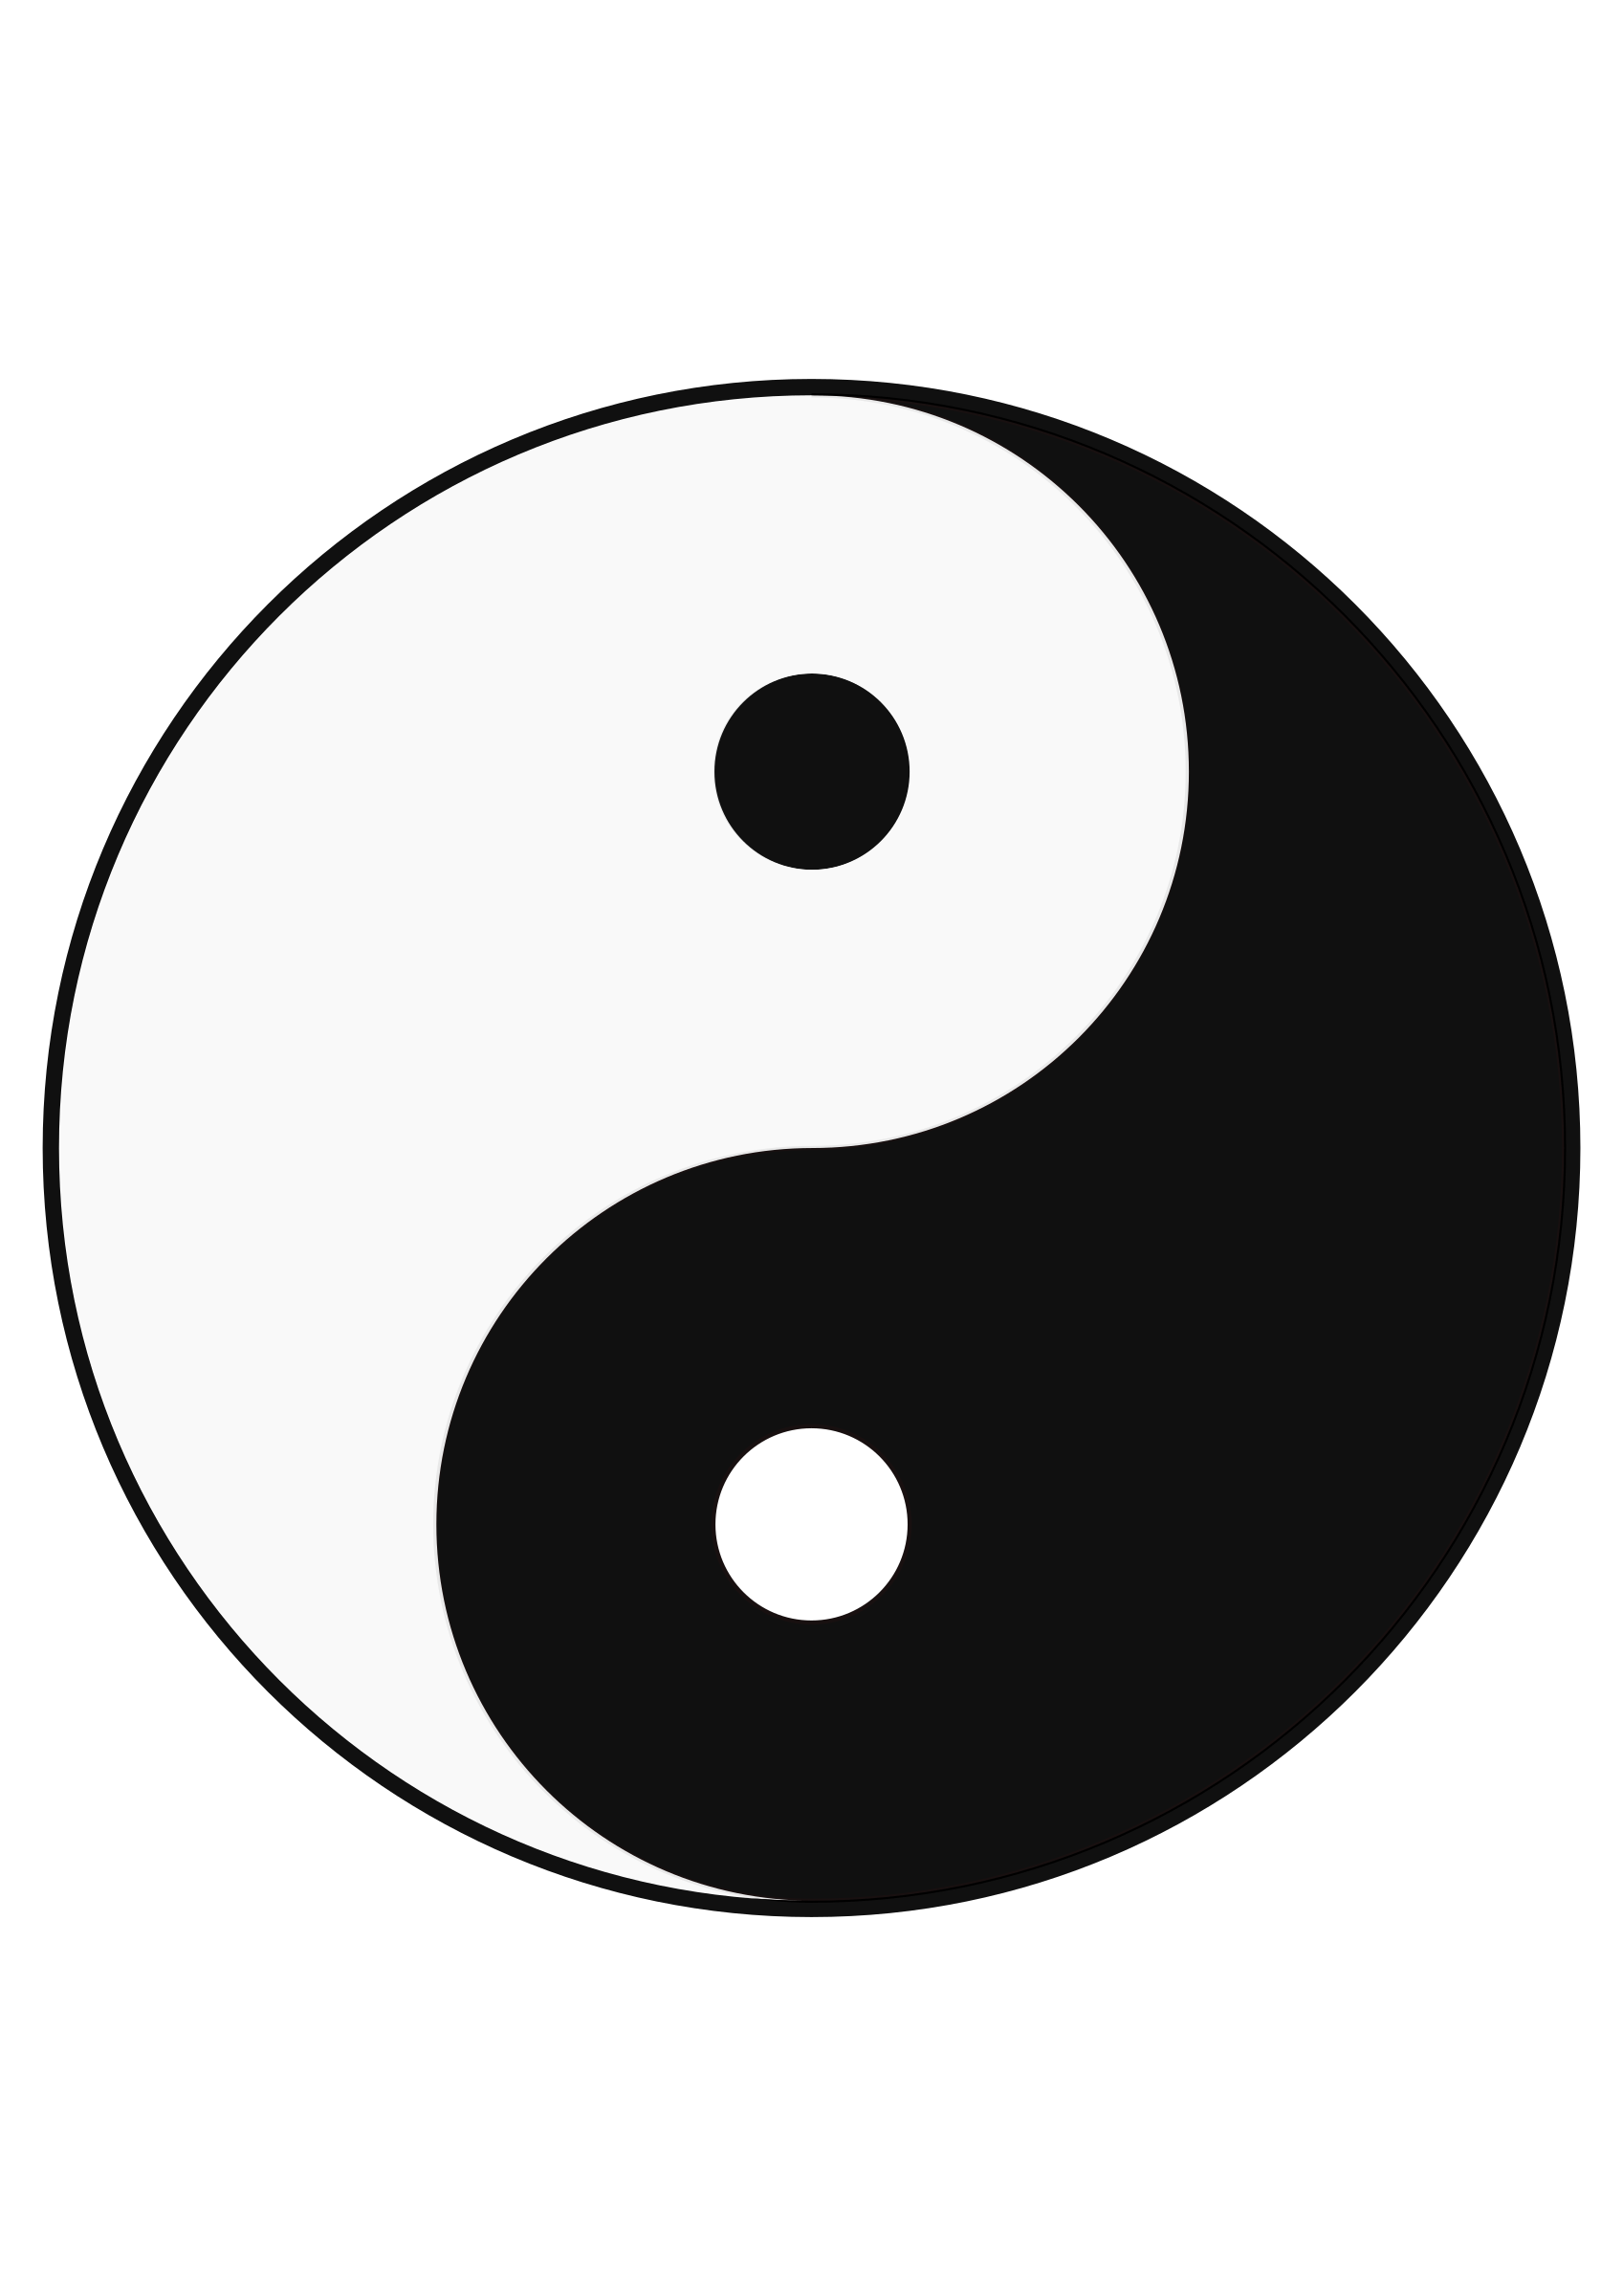 ying yang by augus_pava